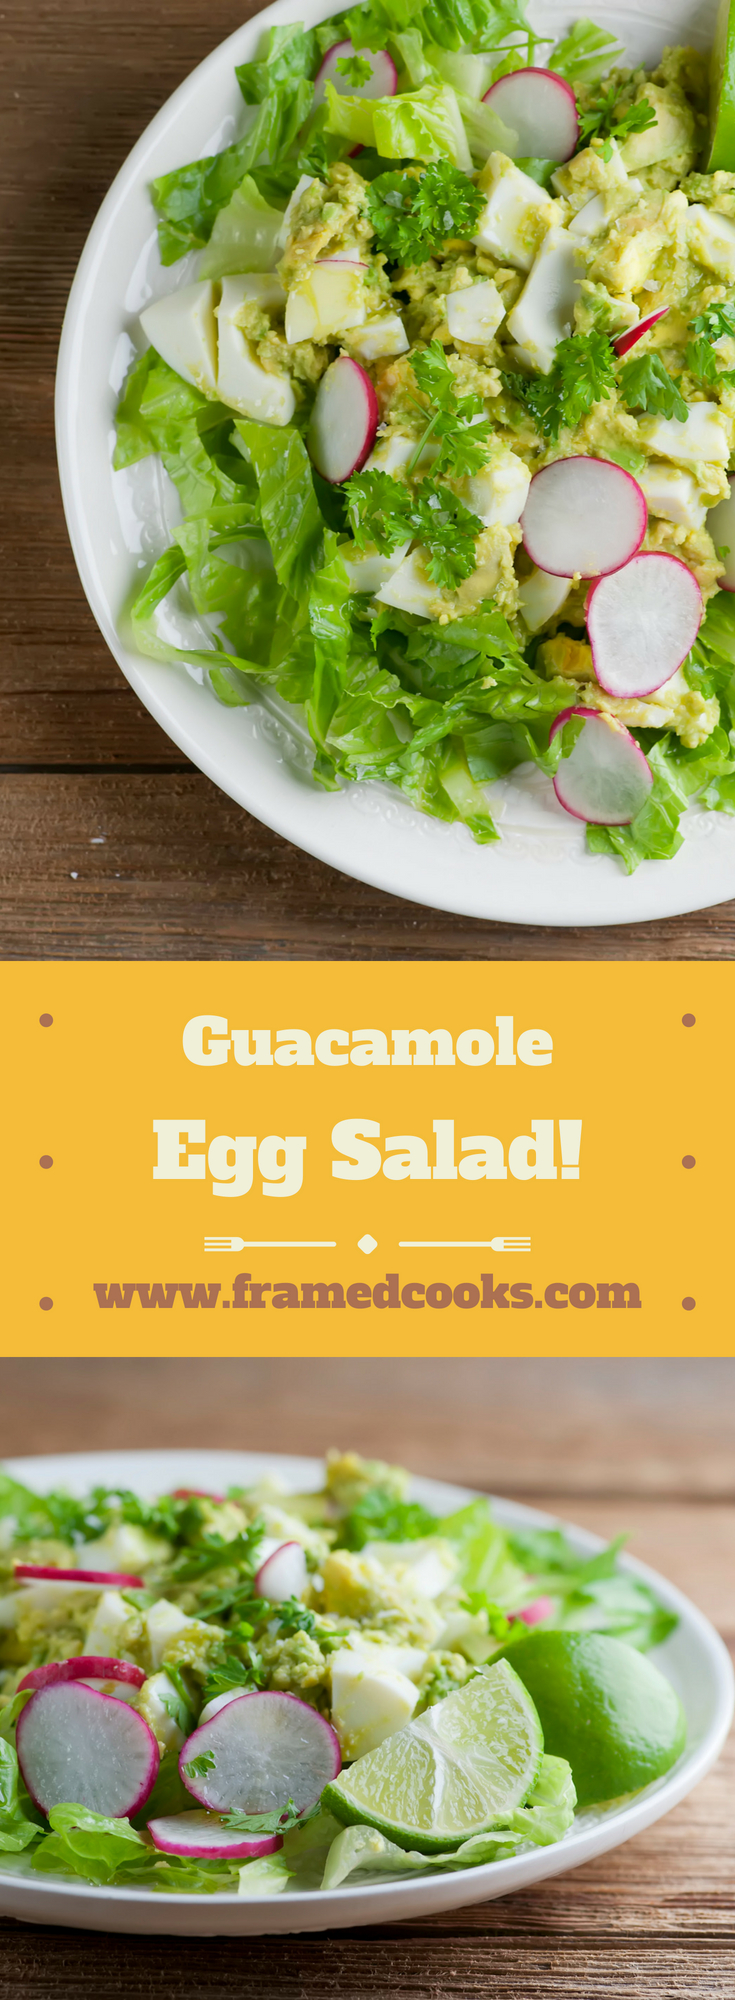 Lighten up your lunch by swapping out the mayo for avocado in this easy recipe for guacamole egg salad! Cheery radishes give this easy dish just the right amount of sass.